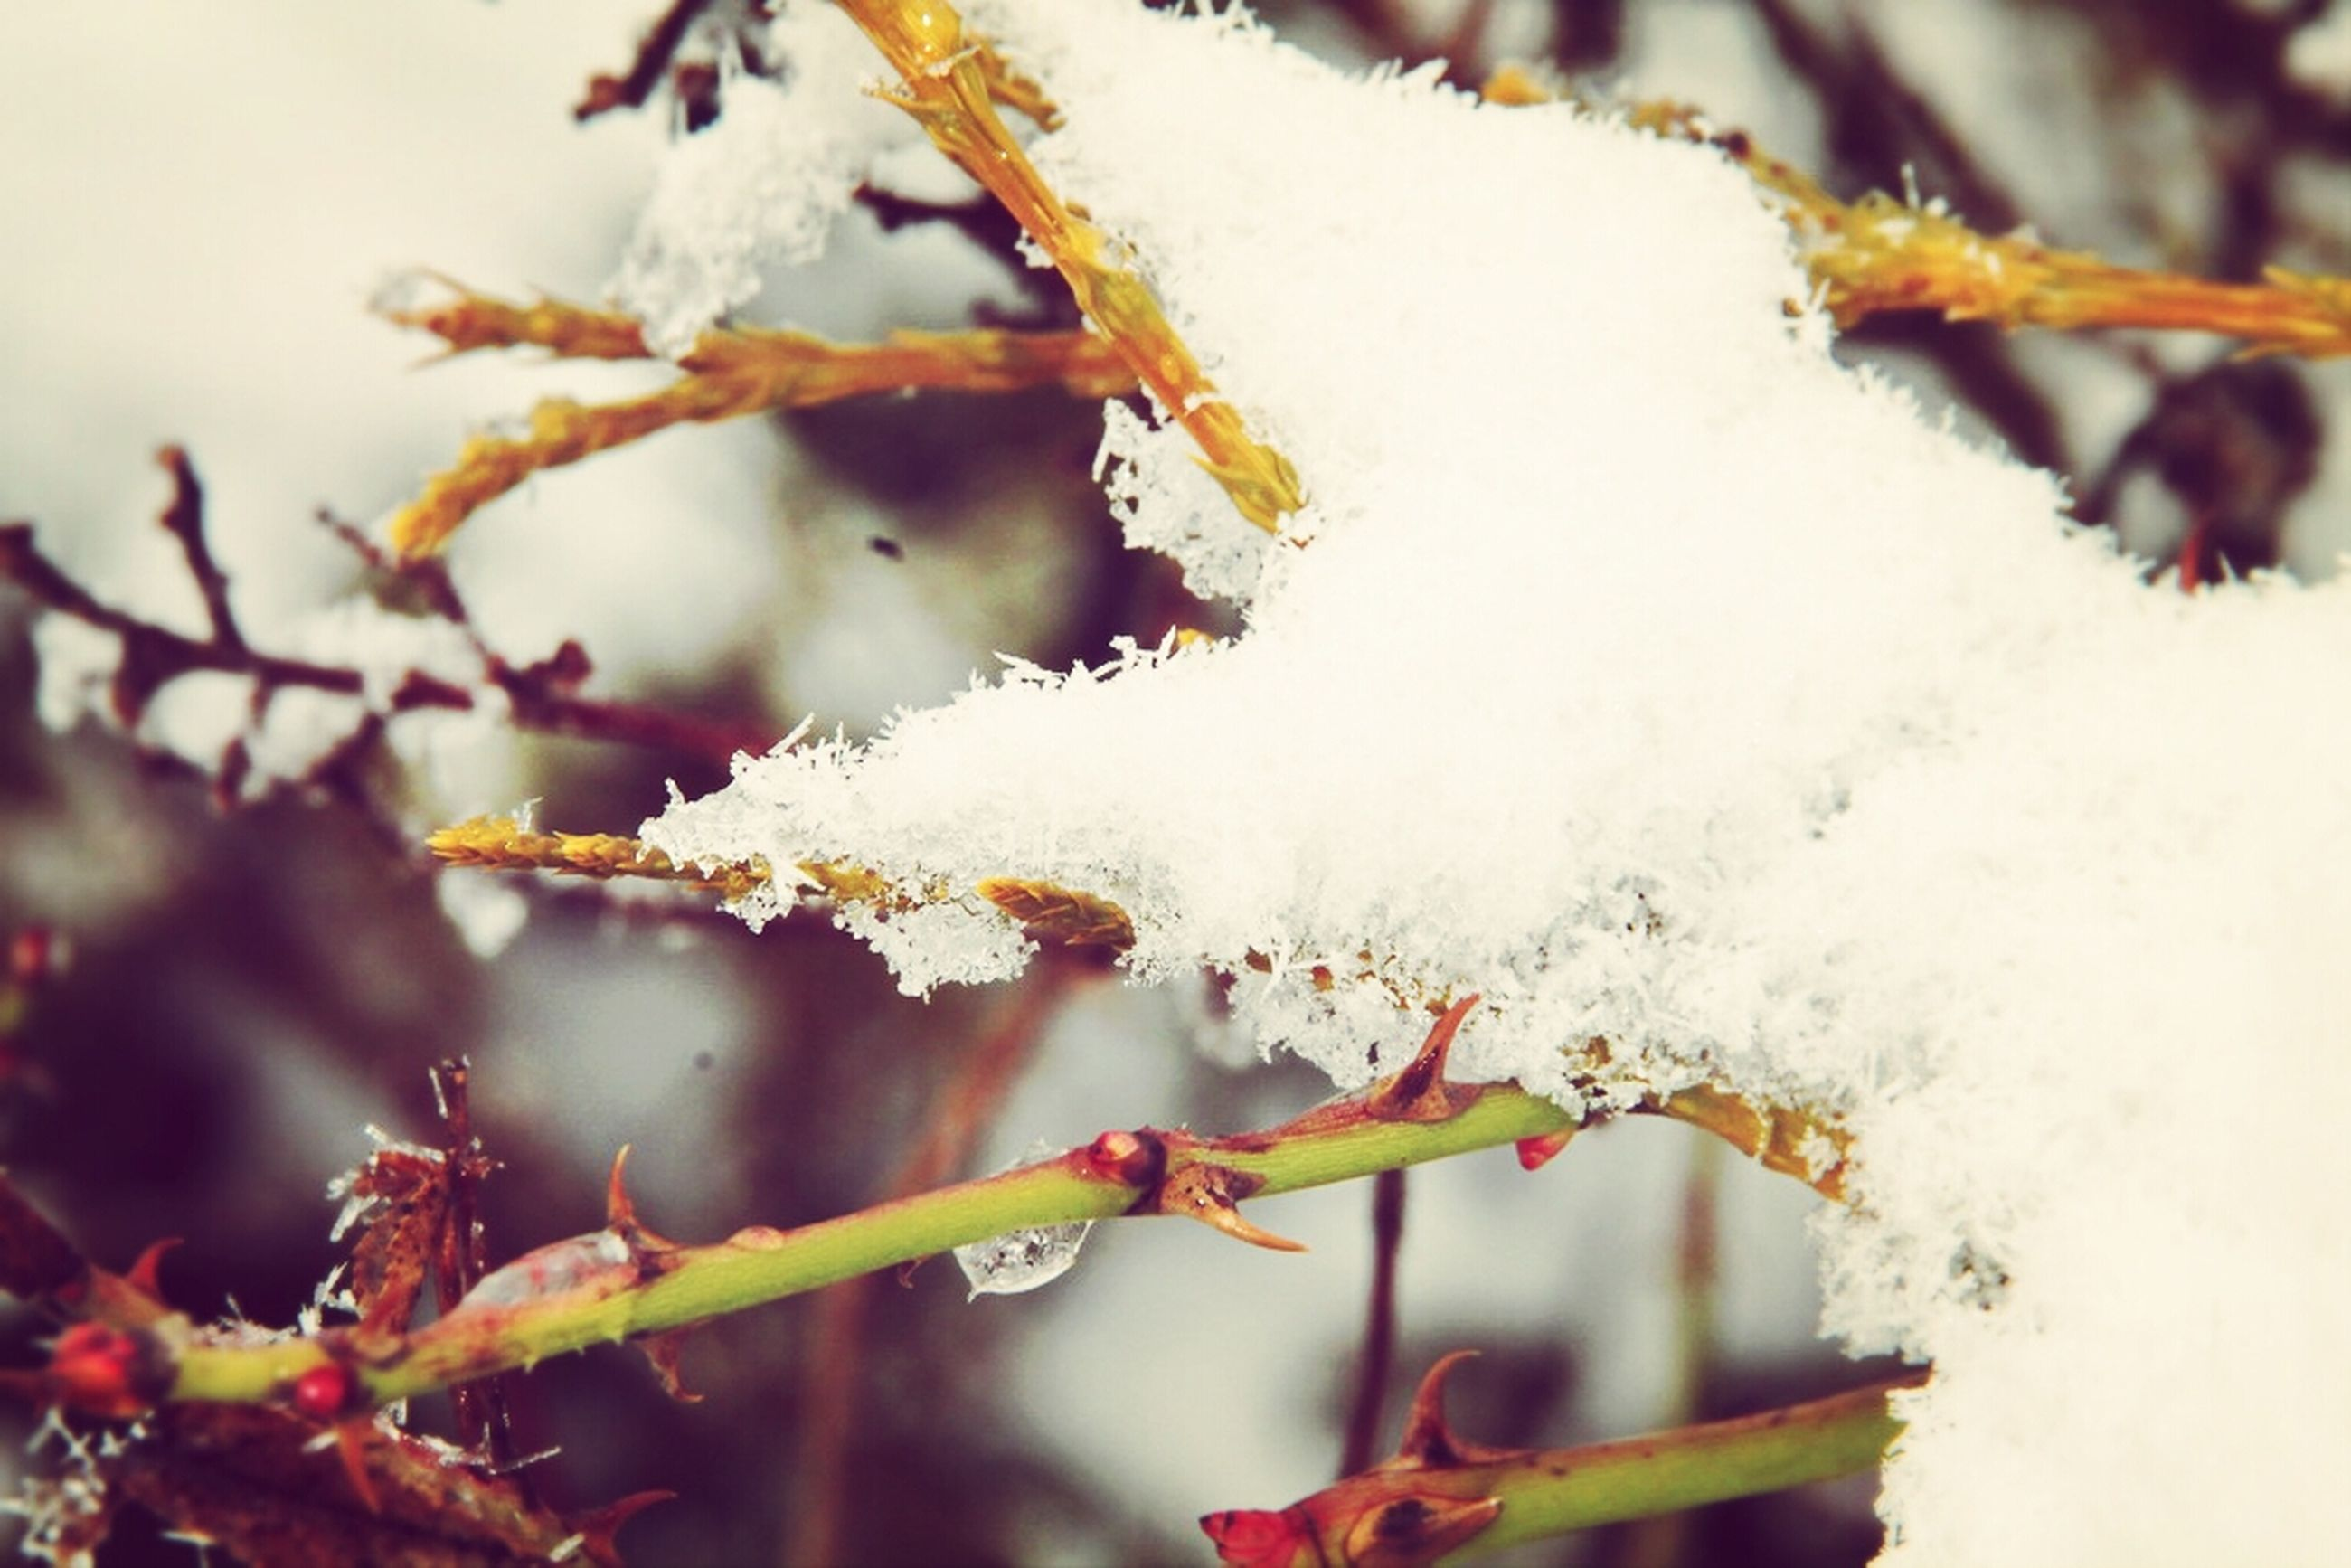 winter, snow, cold temperature, focus on foreground, season, close-up, branch, nature, growth, frozen, beauty in nature, flower, twig, plant, weather, fragility, selective focus, tree, outdoors, white color